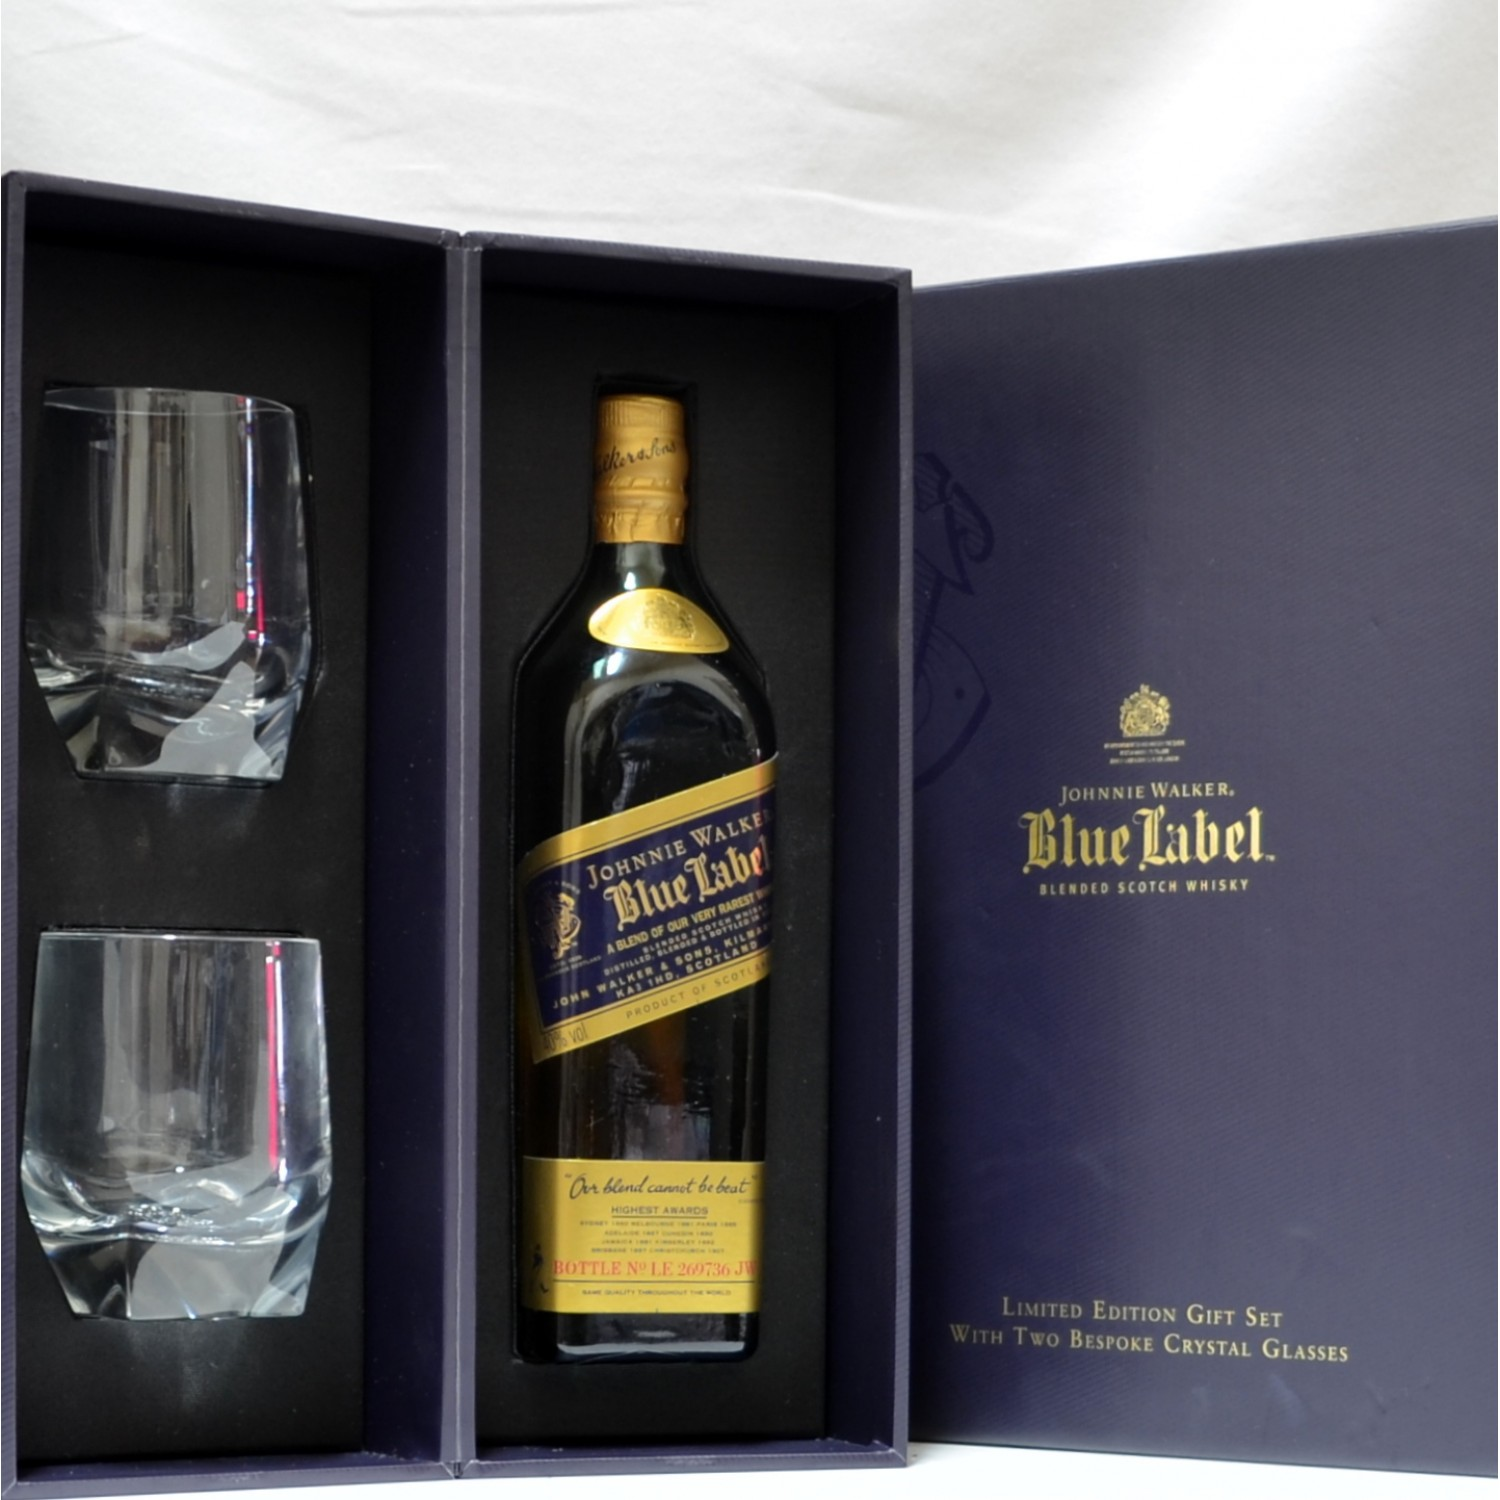 Scotch Whisky Auctions   The 17th Auction   Johnnie Walker Blue Label Gift Set